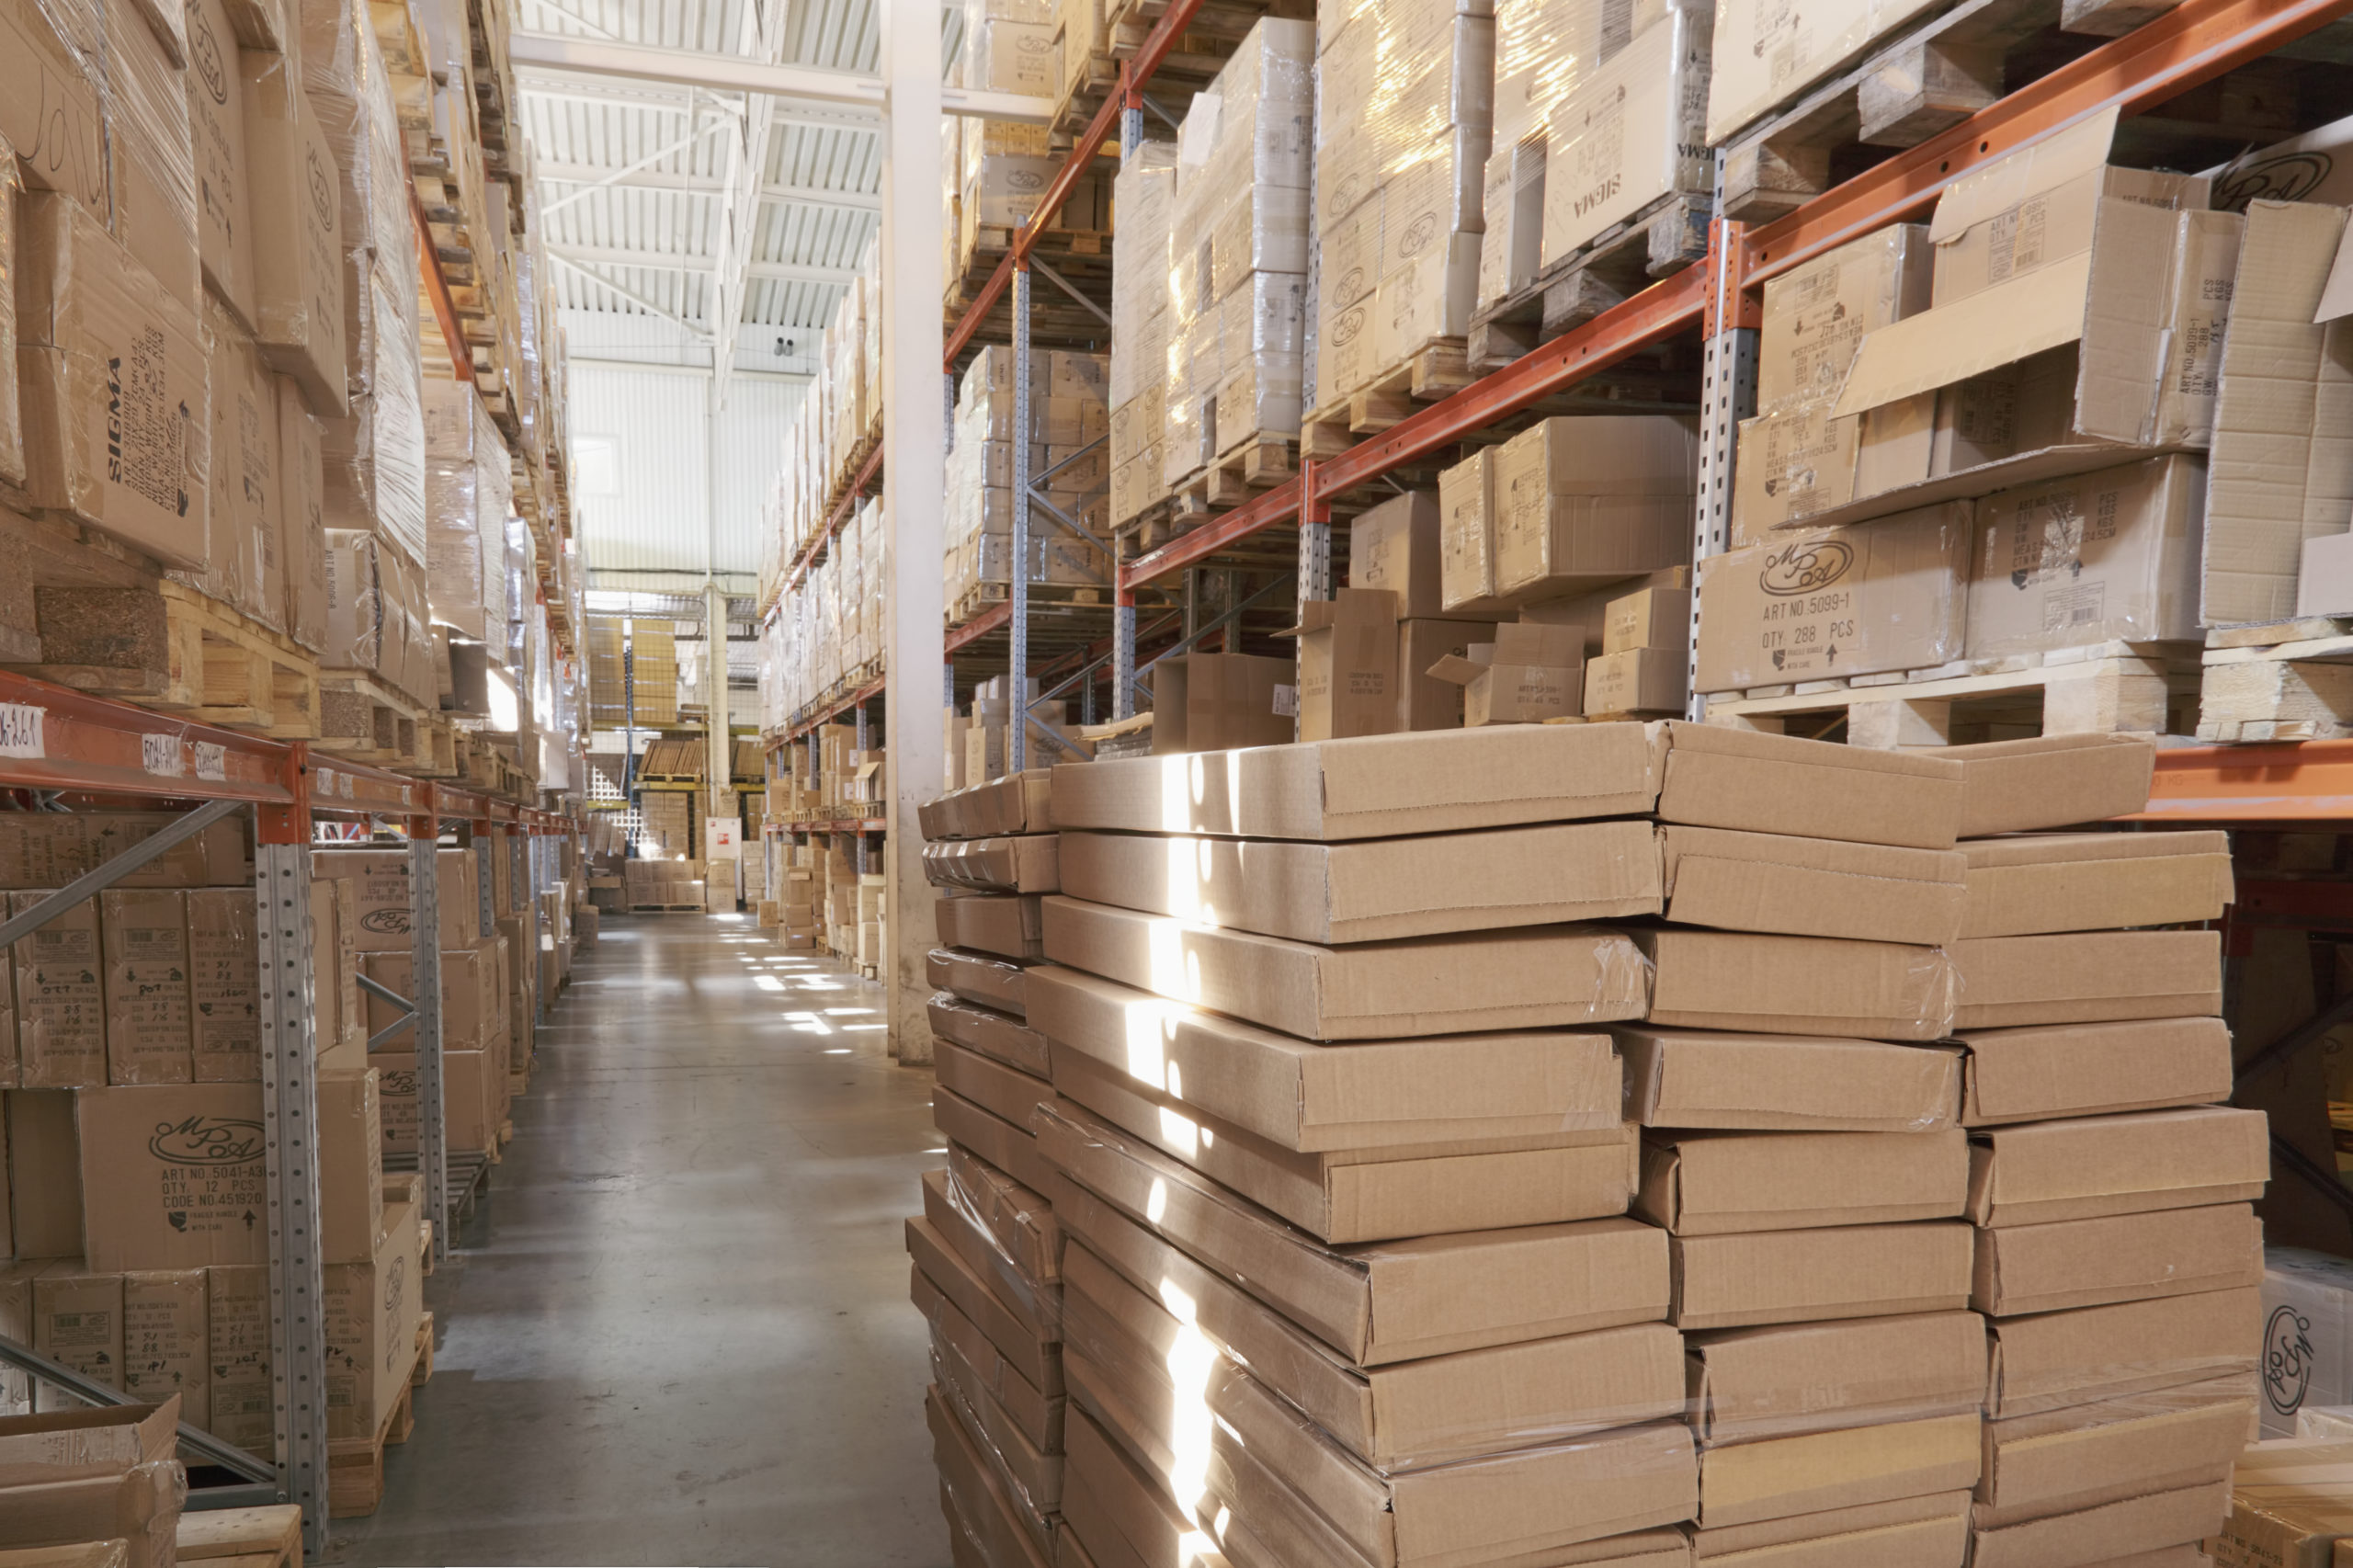 West Coast Warehouse space is tightening as costs rise